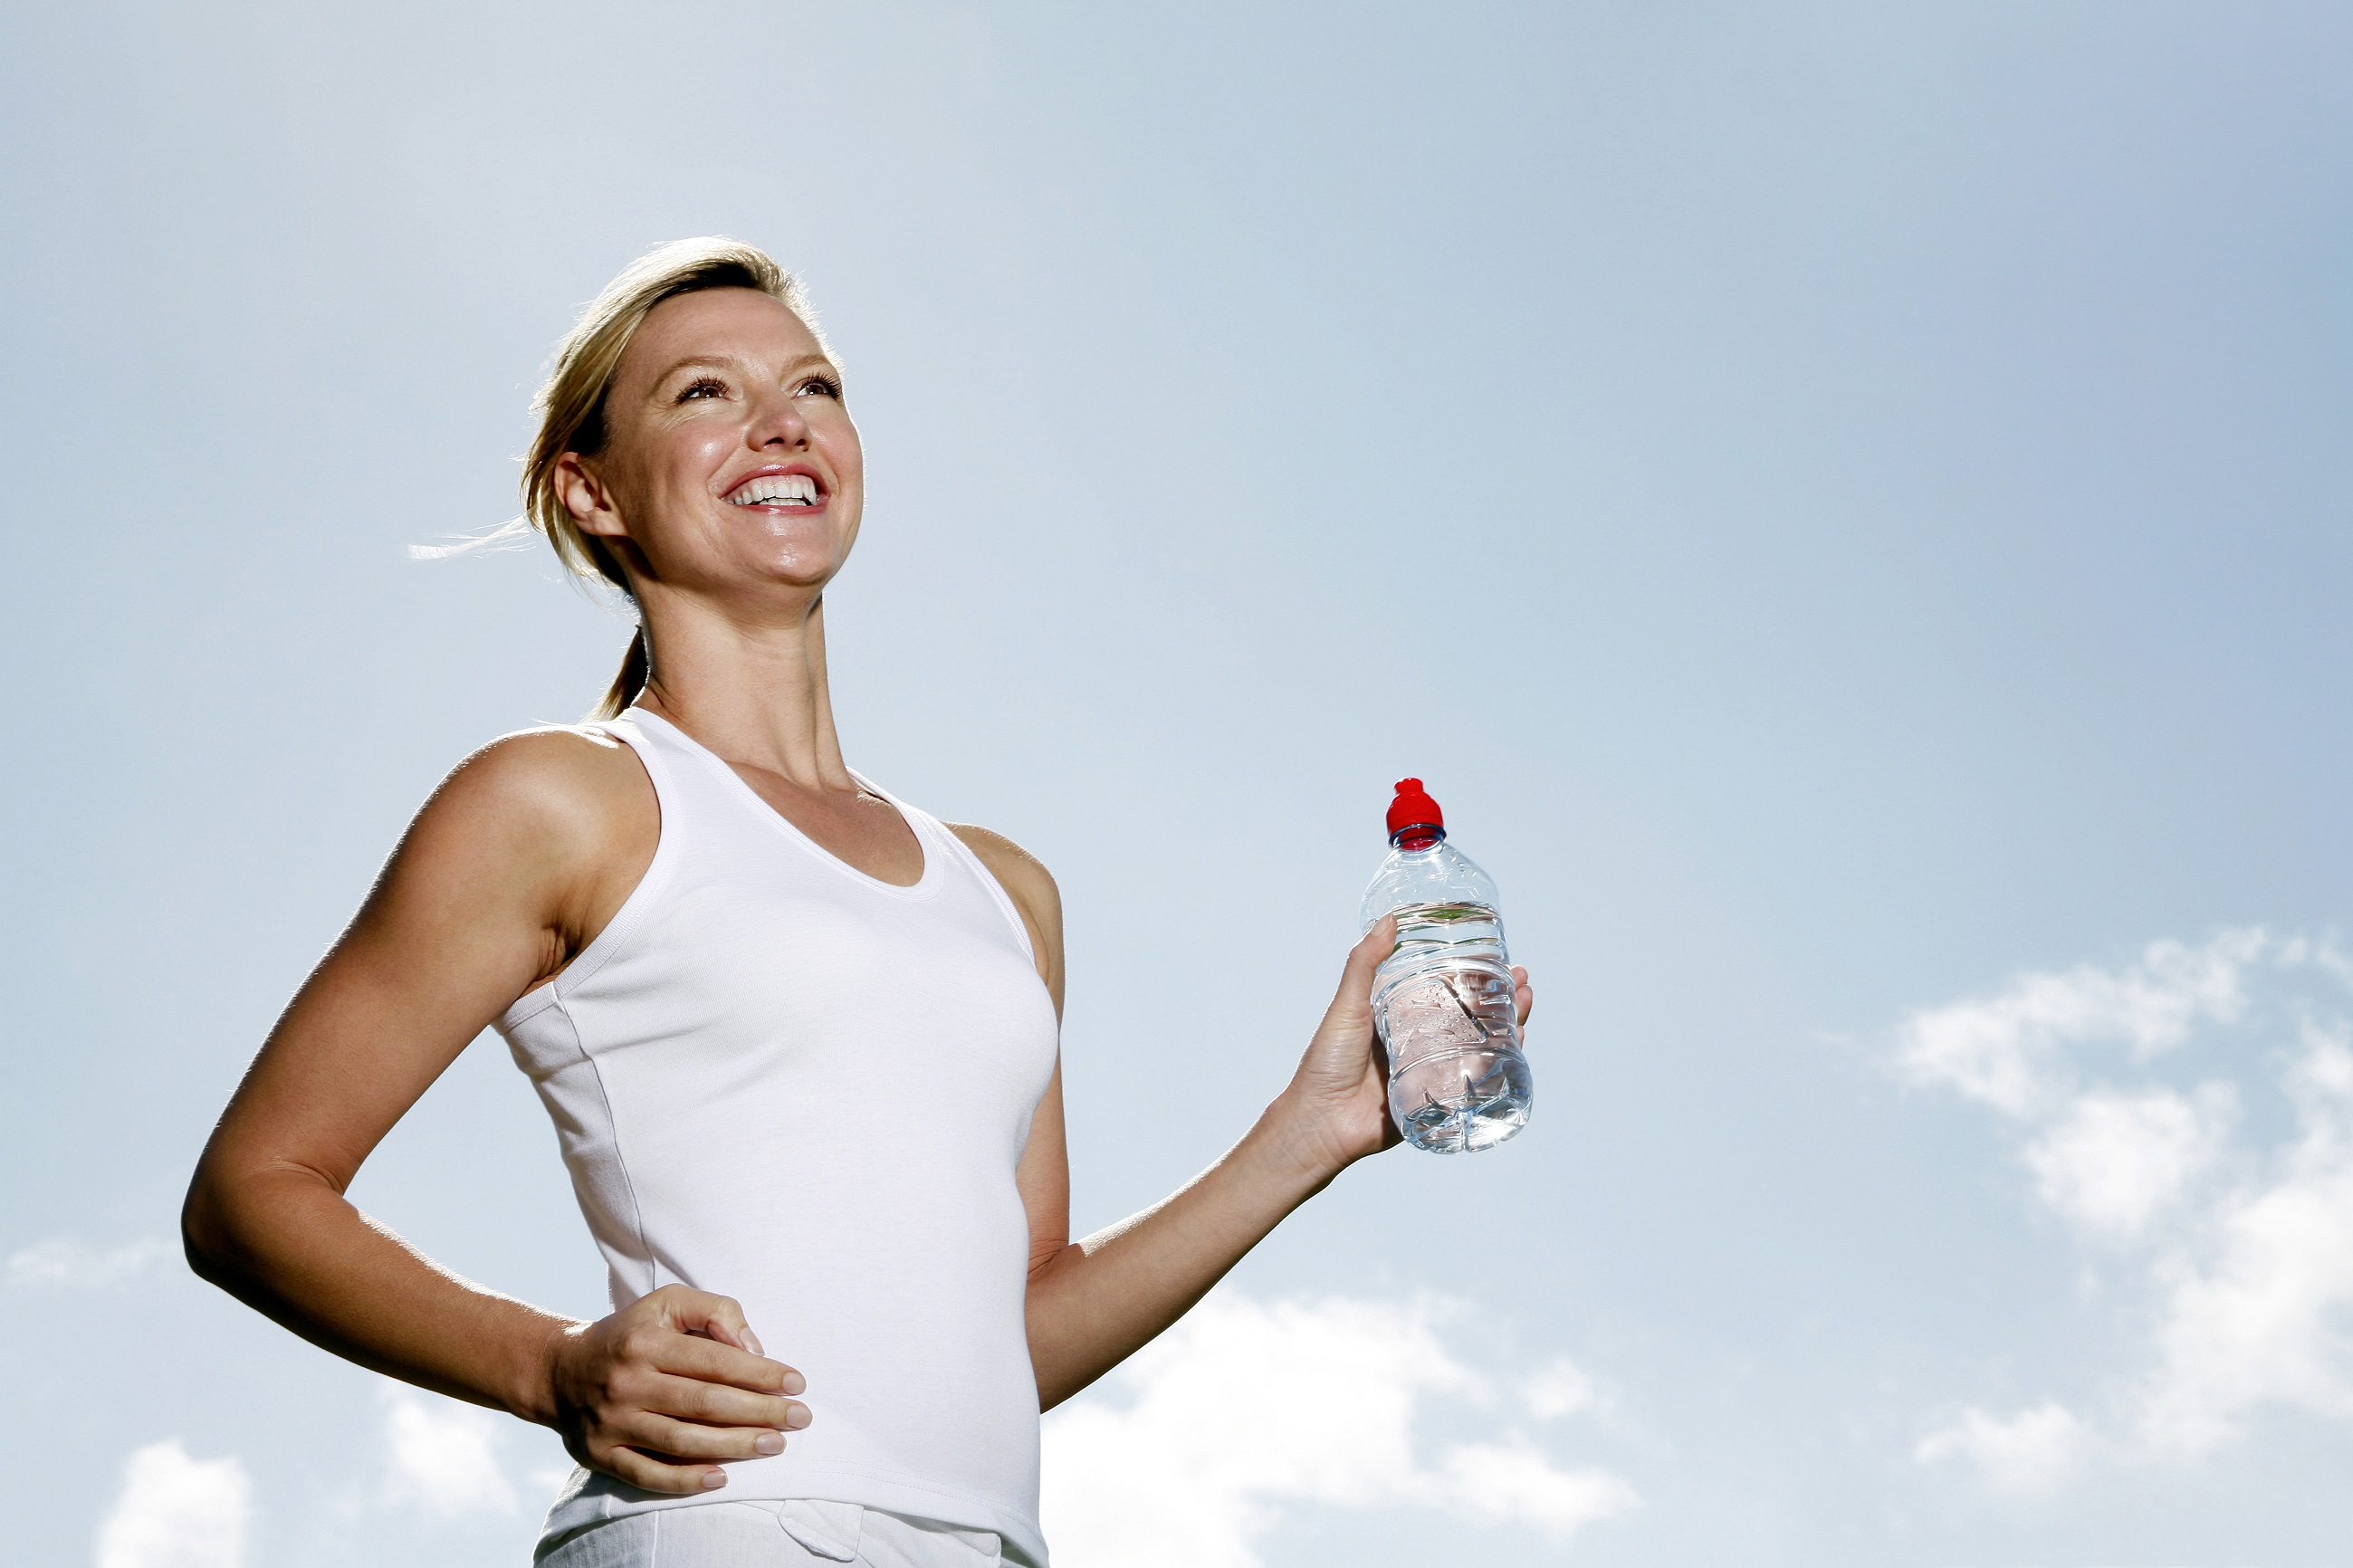 woman-running-with-water-bottle-in-hand